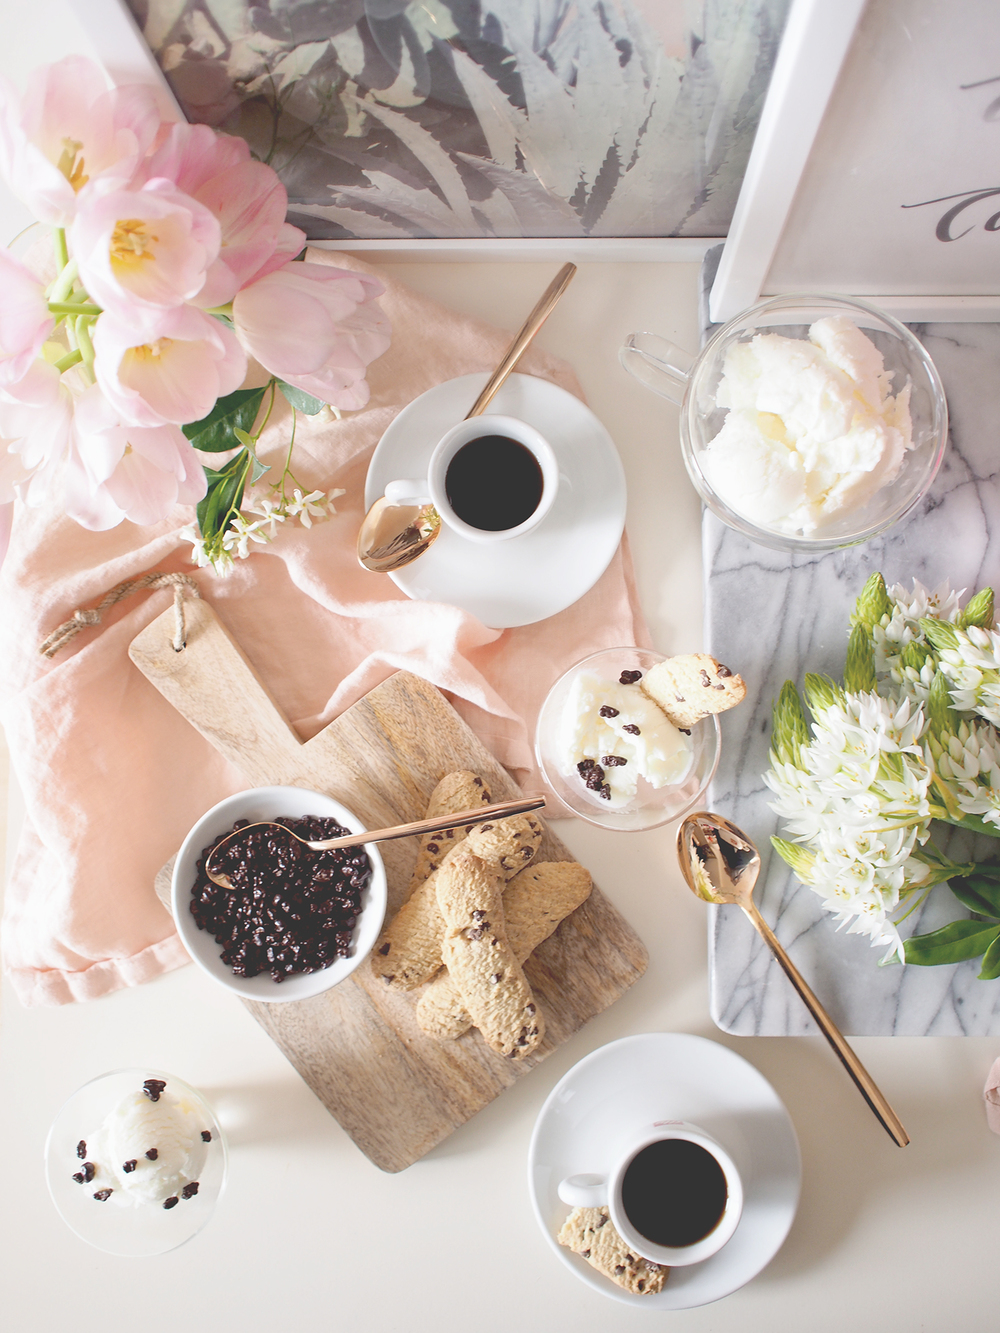 Decorating tips for a mom's day coffee bar! I love using art as a backdrop paired with a fun quote | A Fabulous Fete